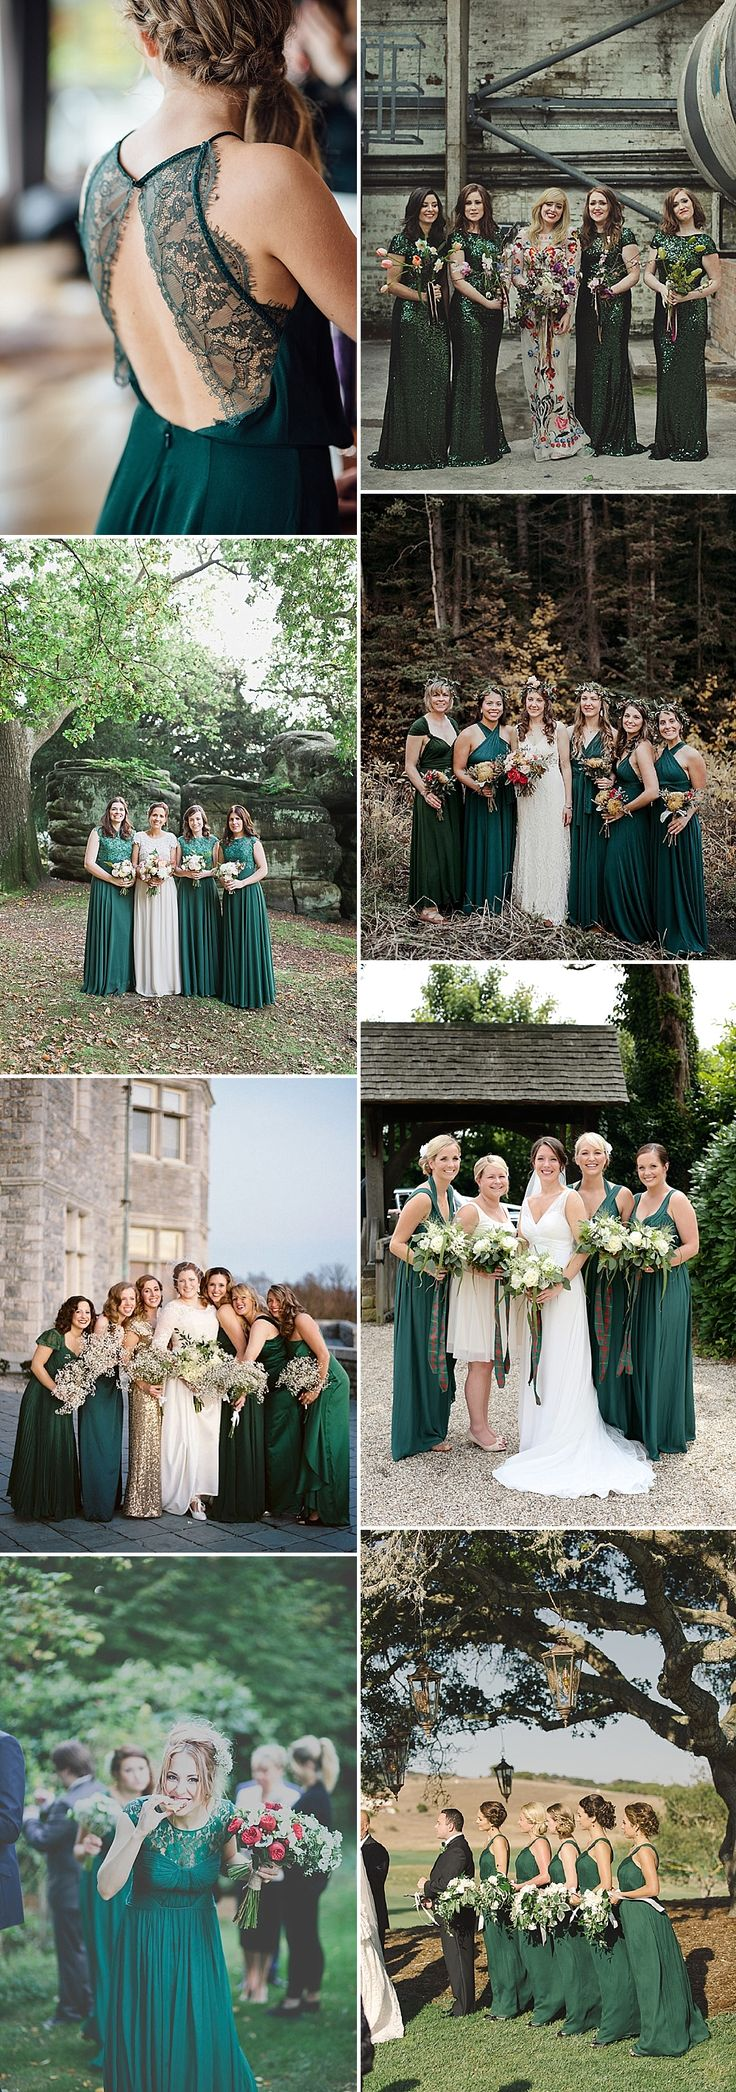 Forest Green Bridesmaid Inspiration | Emerald | Jade | Teal | Bridesmaid Dresses